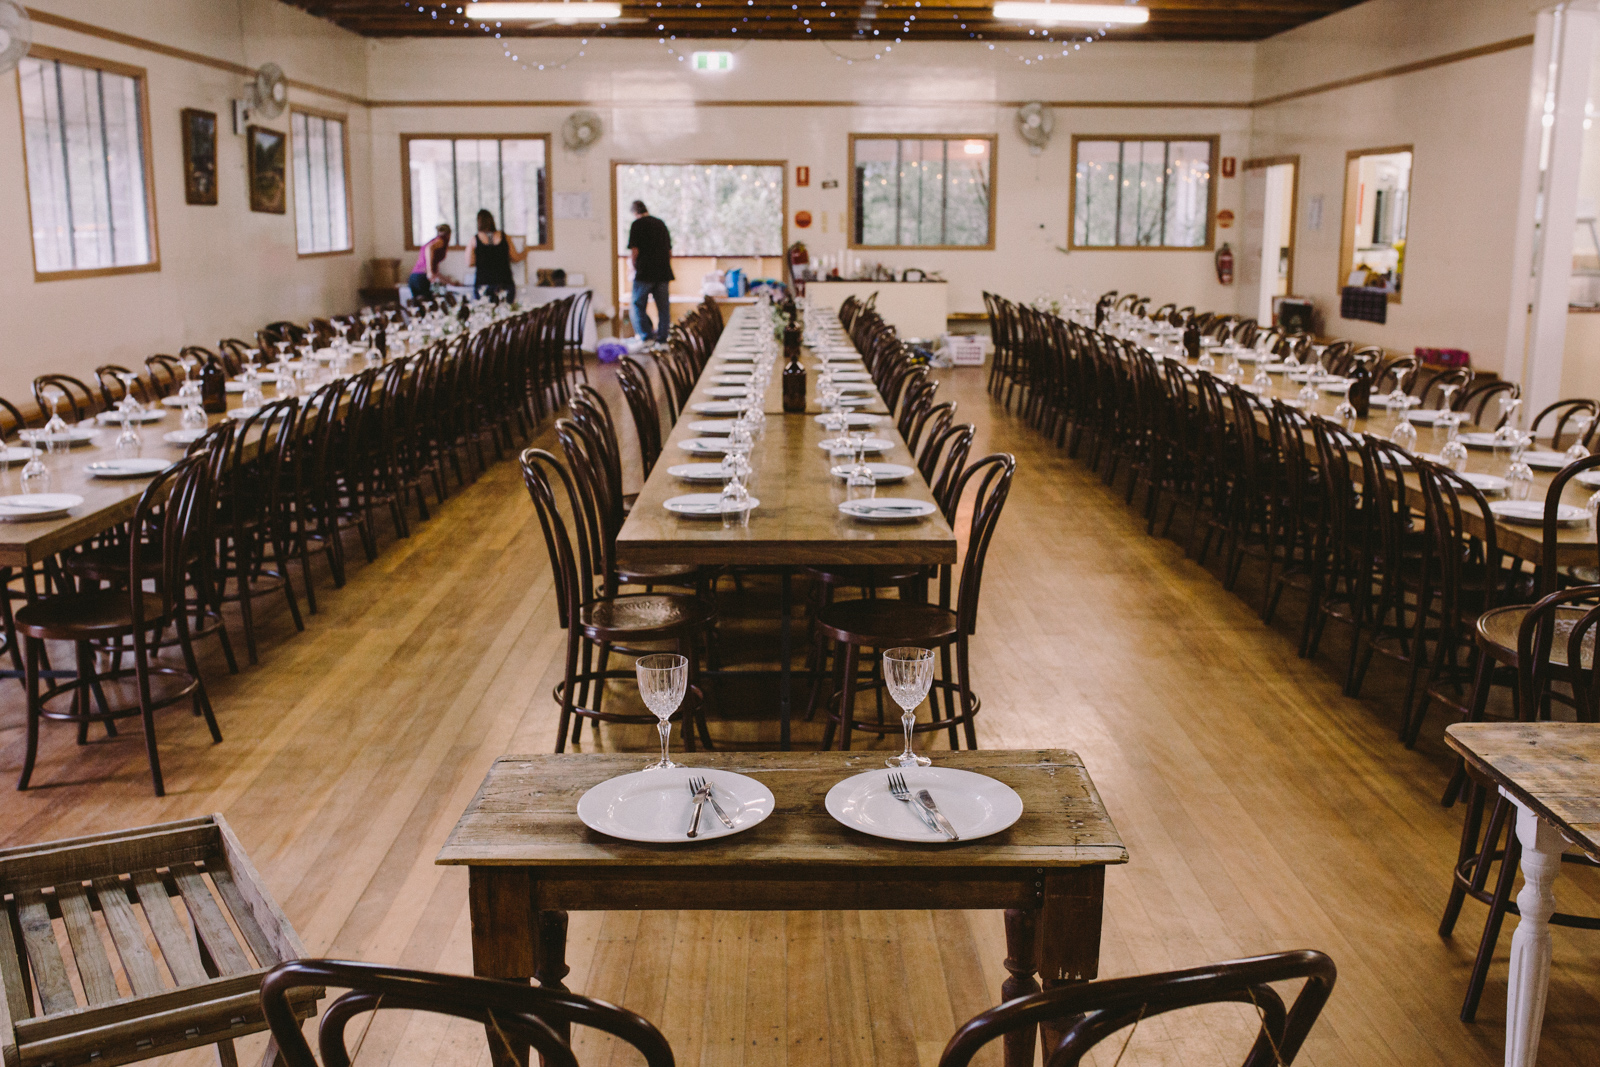 Ashley and Alex | Mt Pleasant Hall and Henzells Chapel wedding | Hampton Event Hire - wedding and event hire | www.hamptoneventhire.com | Walnut bentwood chairs | Photo by Dean Raphael